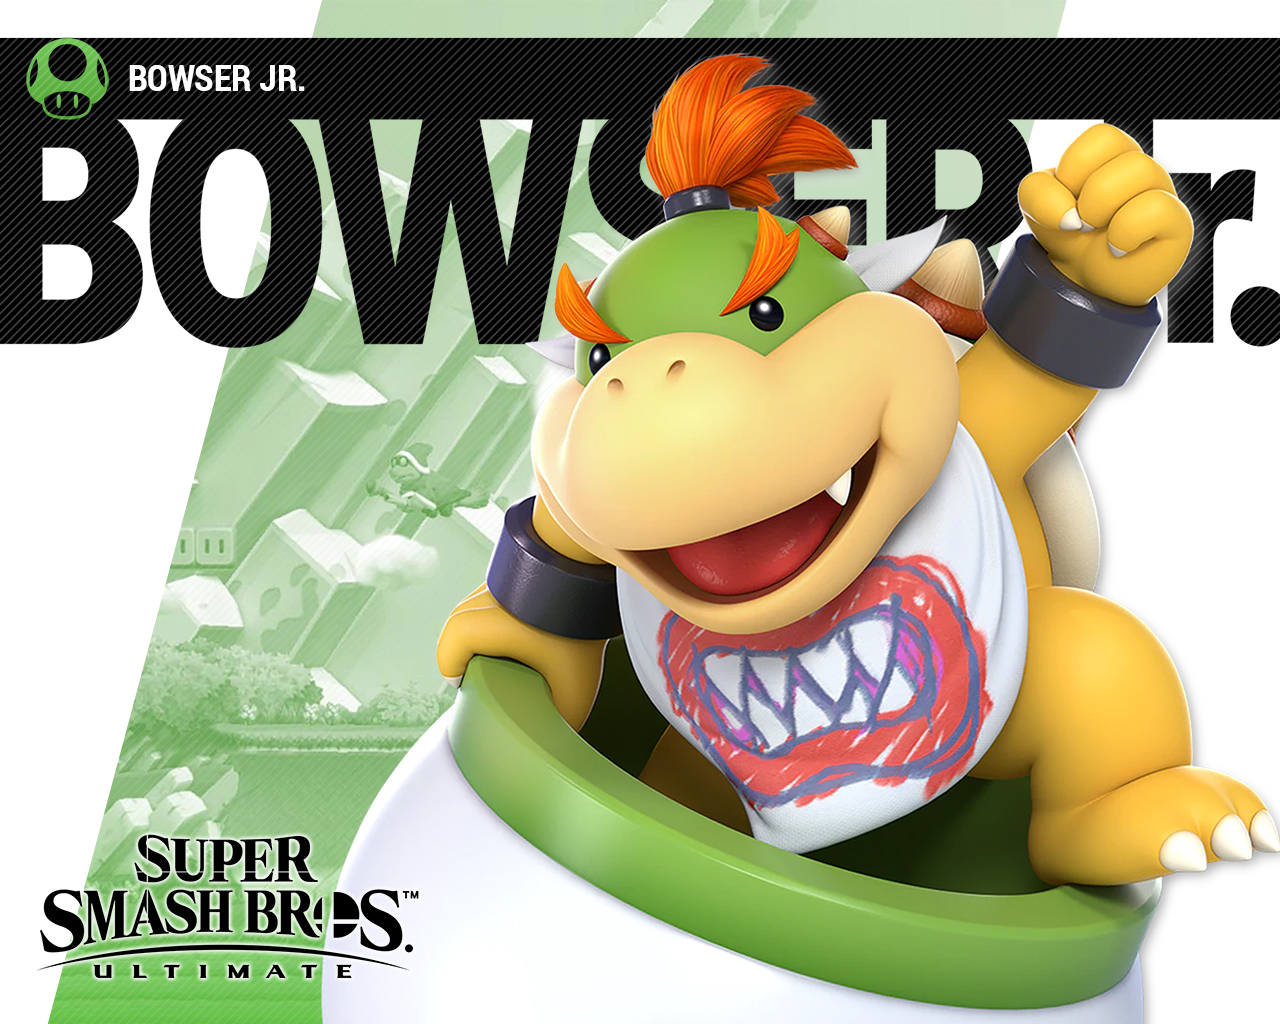 Super Smash Bros Ultimate Bowser Jr Wallpapers Cat With